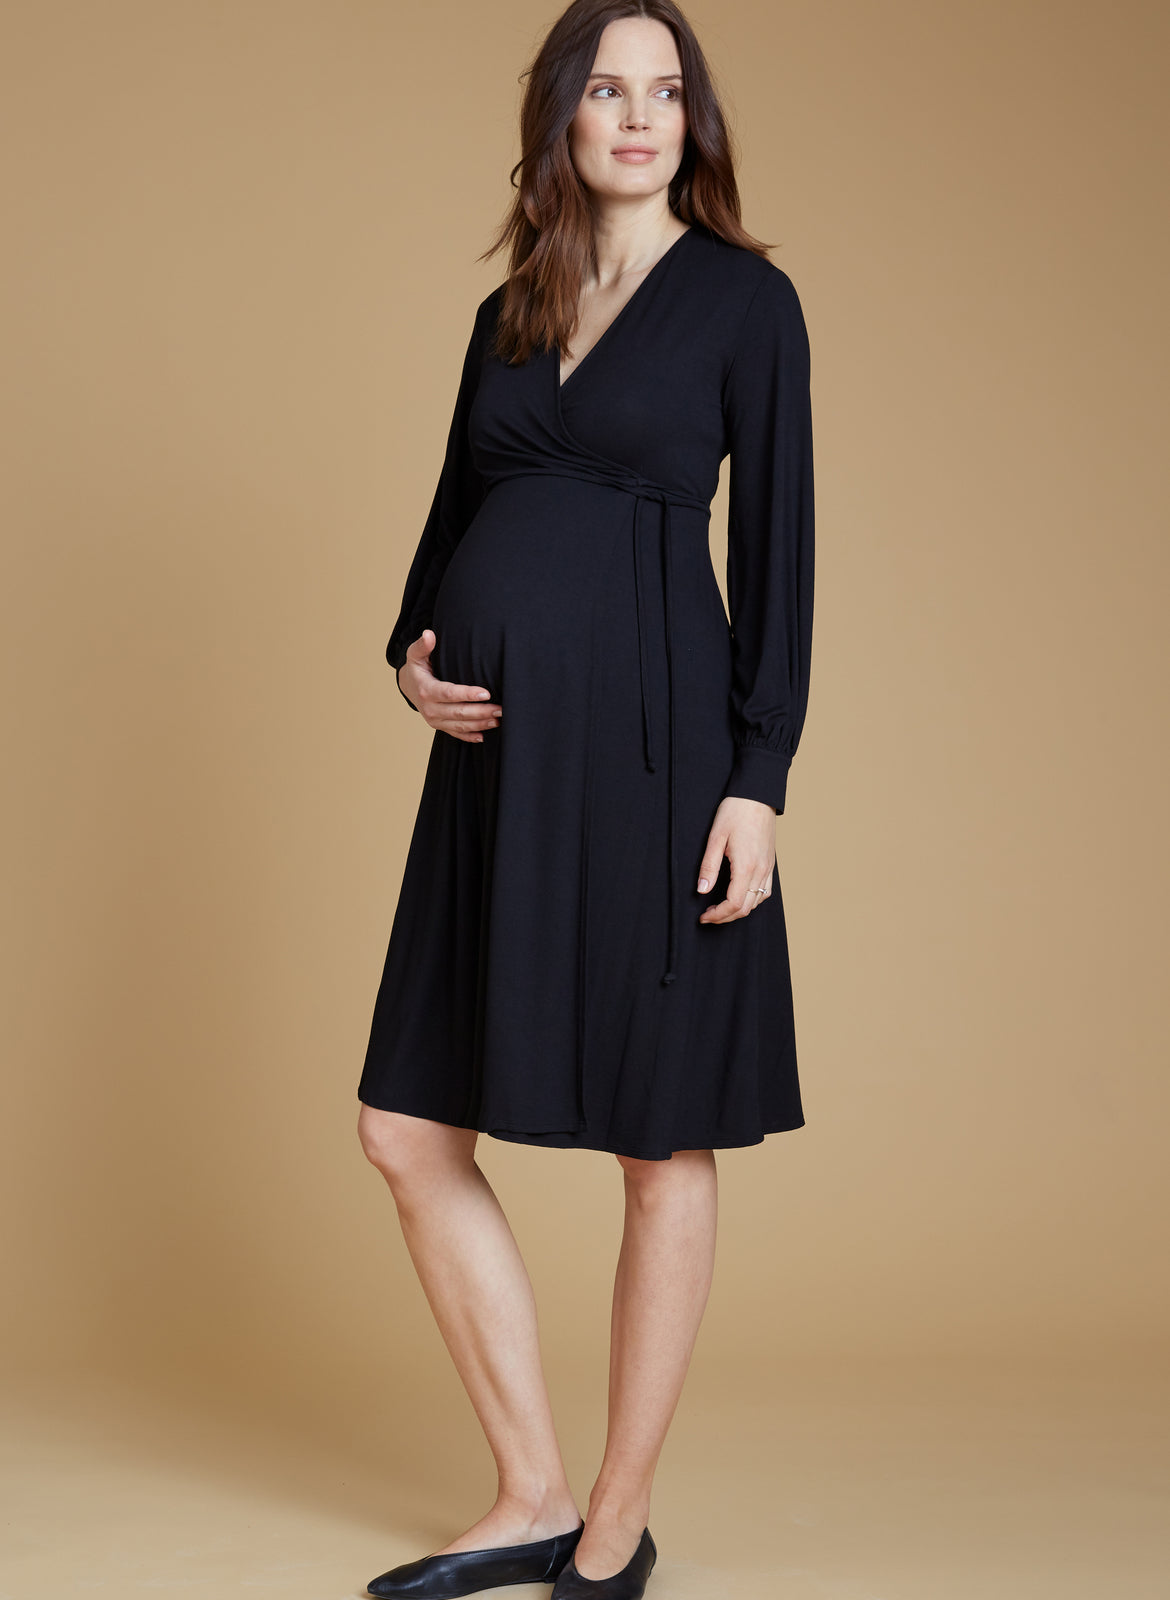 3d3e3b4c1e171 Romola Maternity Wrap Dress – Isabella Oliver US